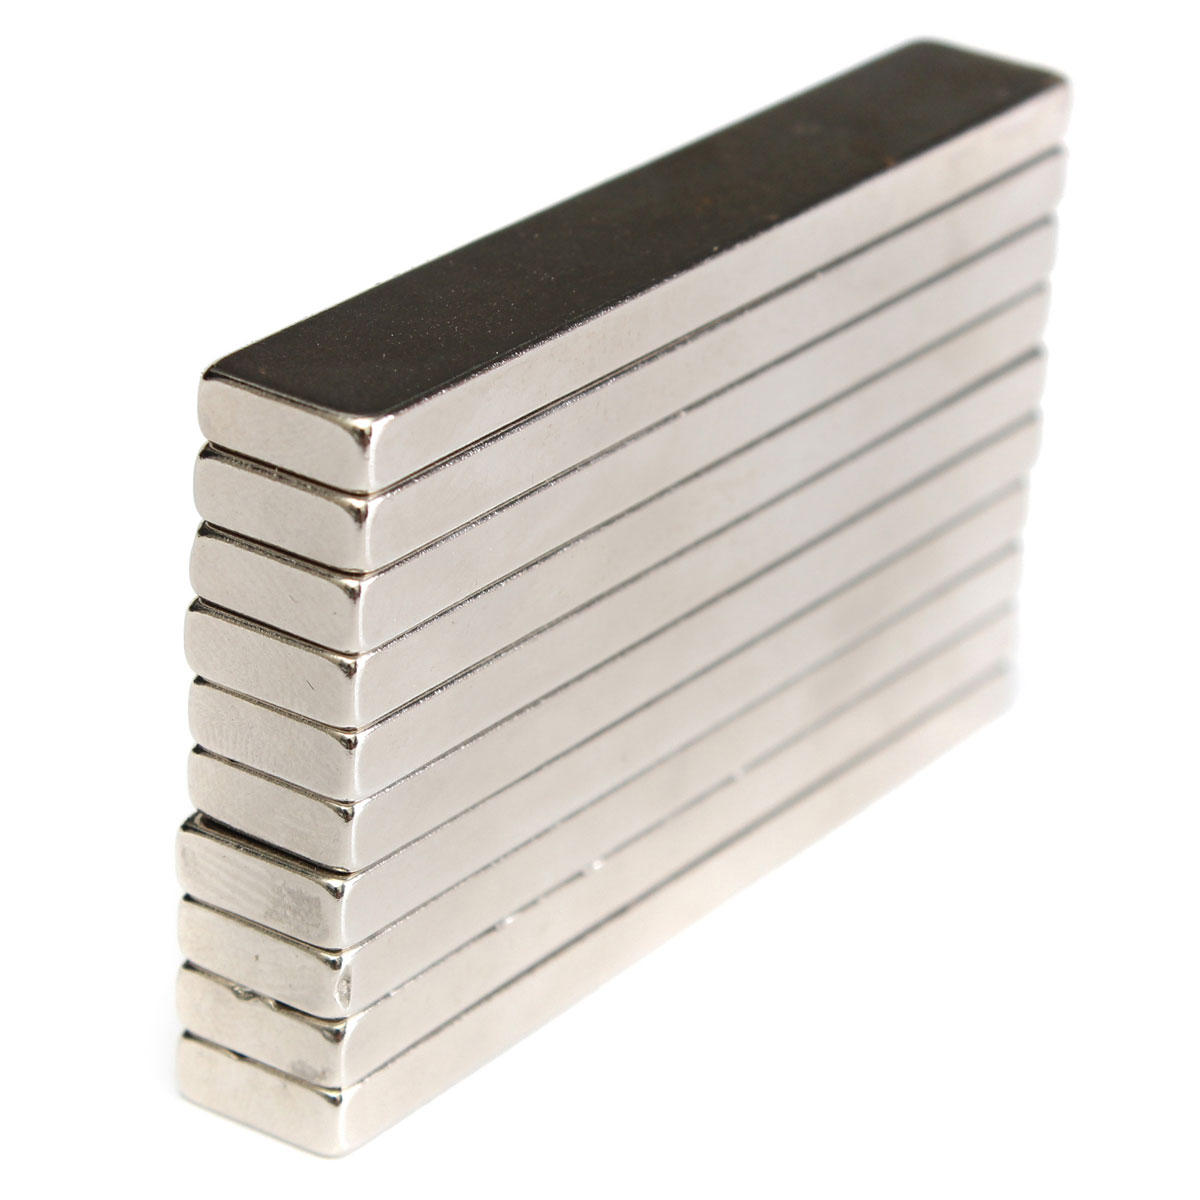 100pcs N52 6mm x 3mm Strong Cylinder Magnet Rare Earth Neodymium Magnet - 2